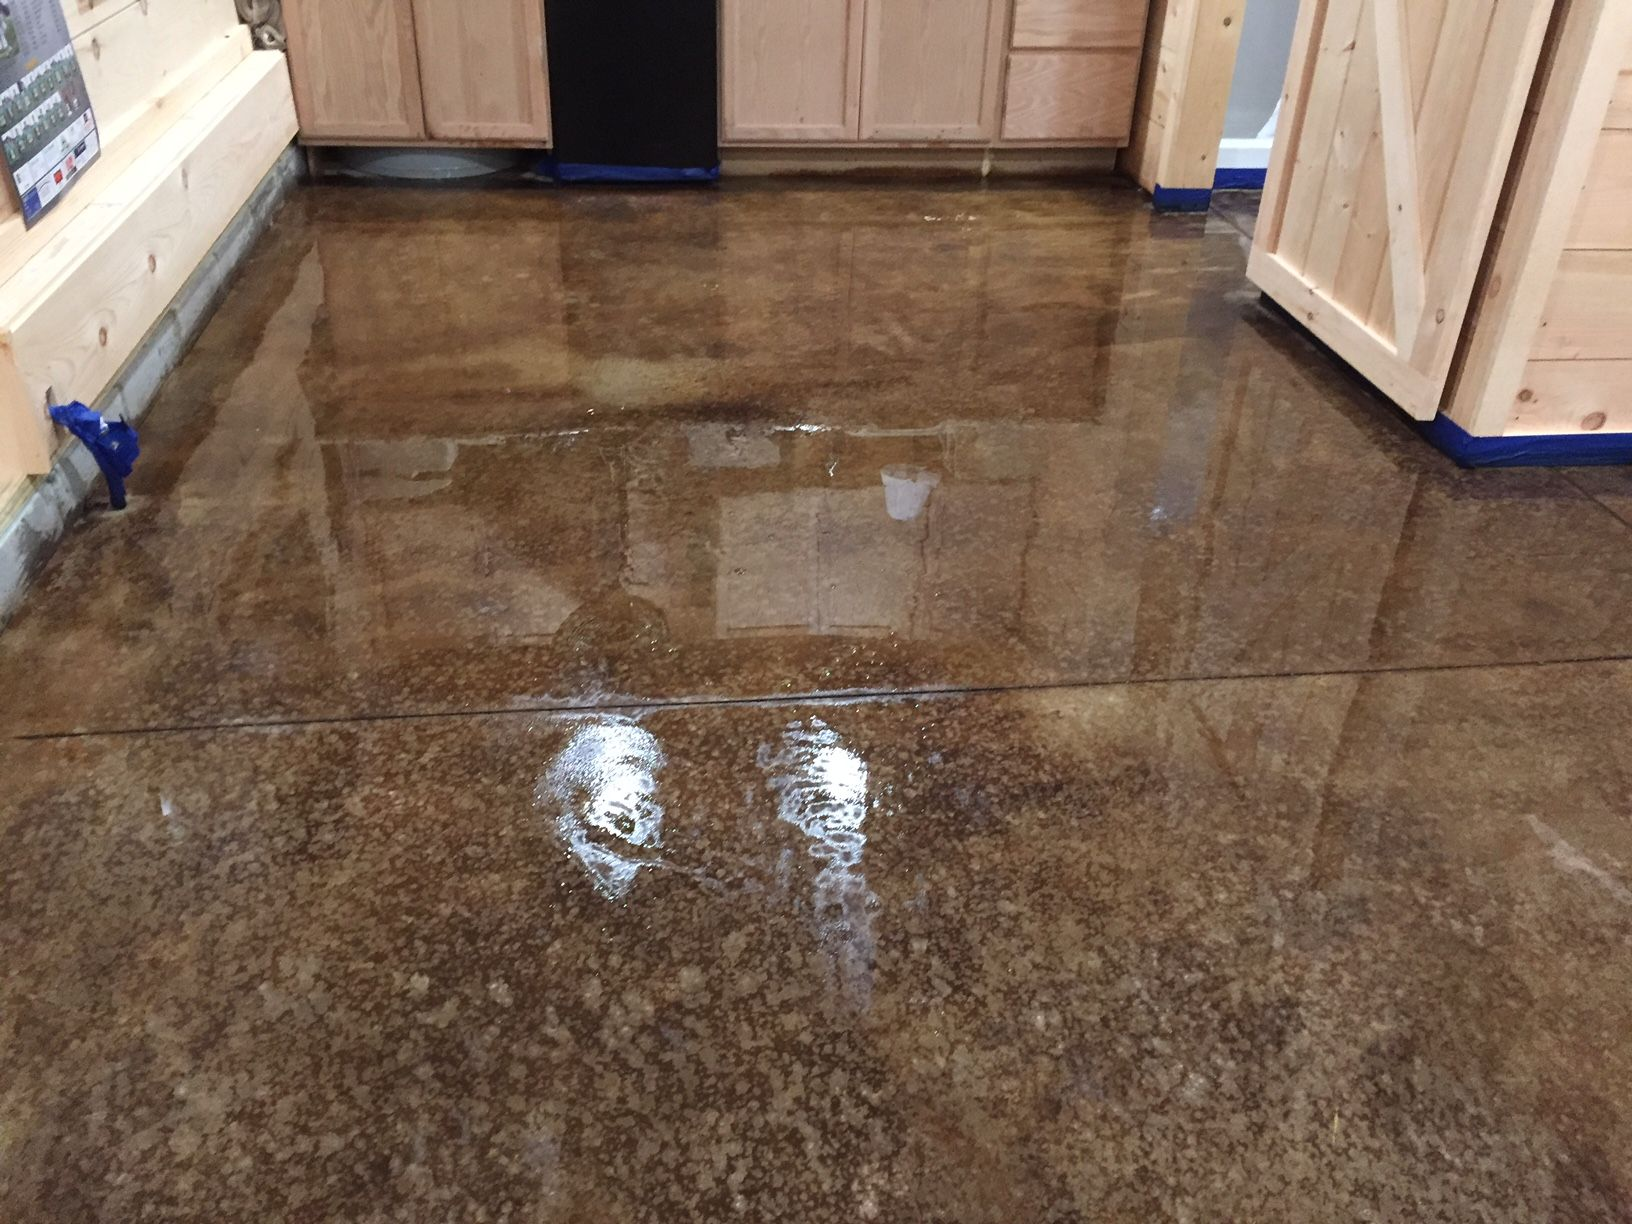 Finished Concrete Countertops Acid Staining Our Concrete Floors An Expensive Look At